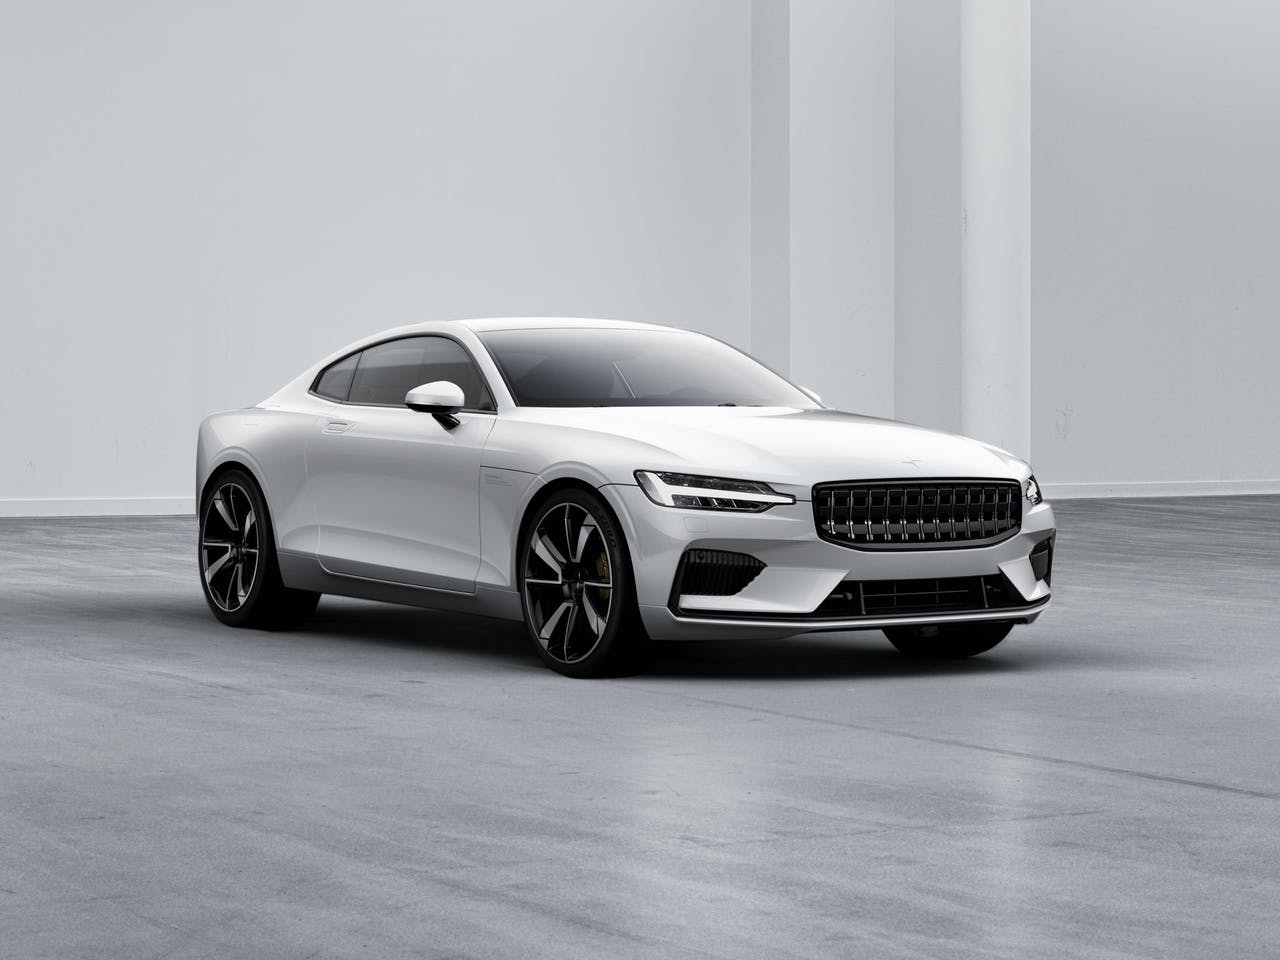 Polestar Unveils Its First Car The 1 And Reveals Home Gt Structured Wiring Channel Vision Panels All Future Cars From Will Feature A Fully Electric Drivetrain Delivering On Our Brand Of Being New Standalone Performance